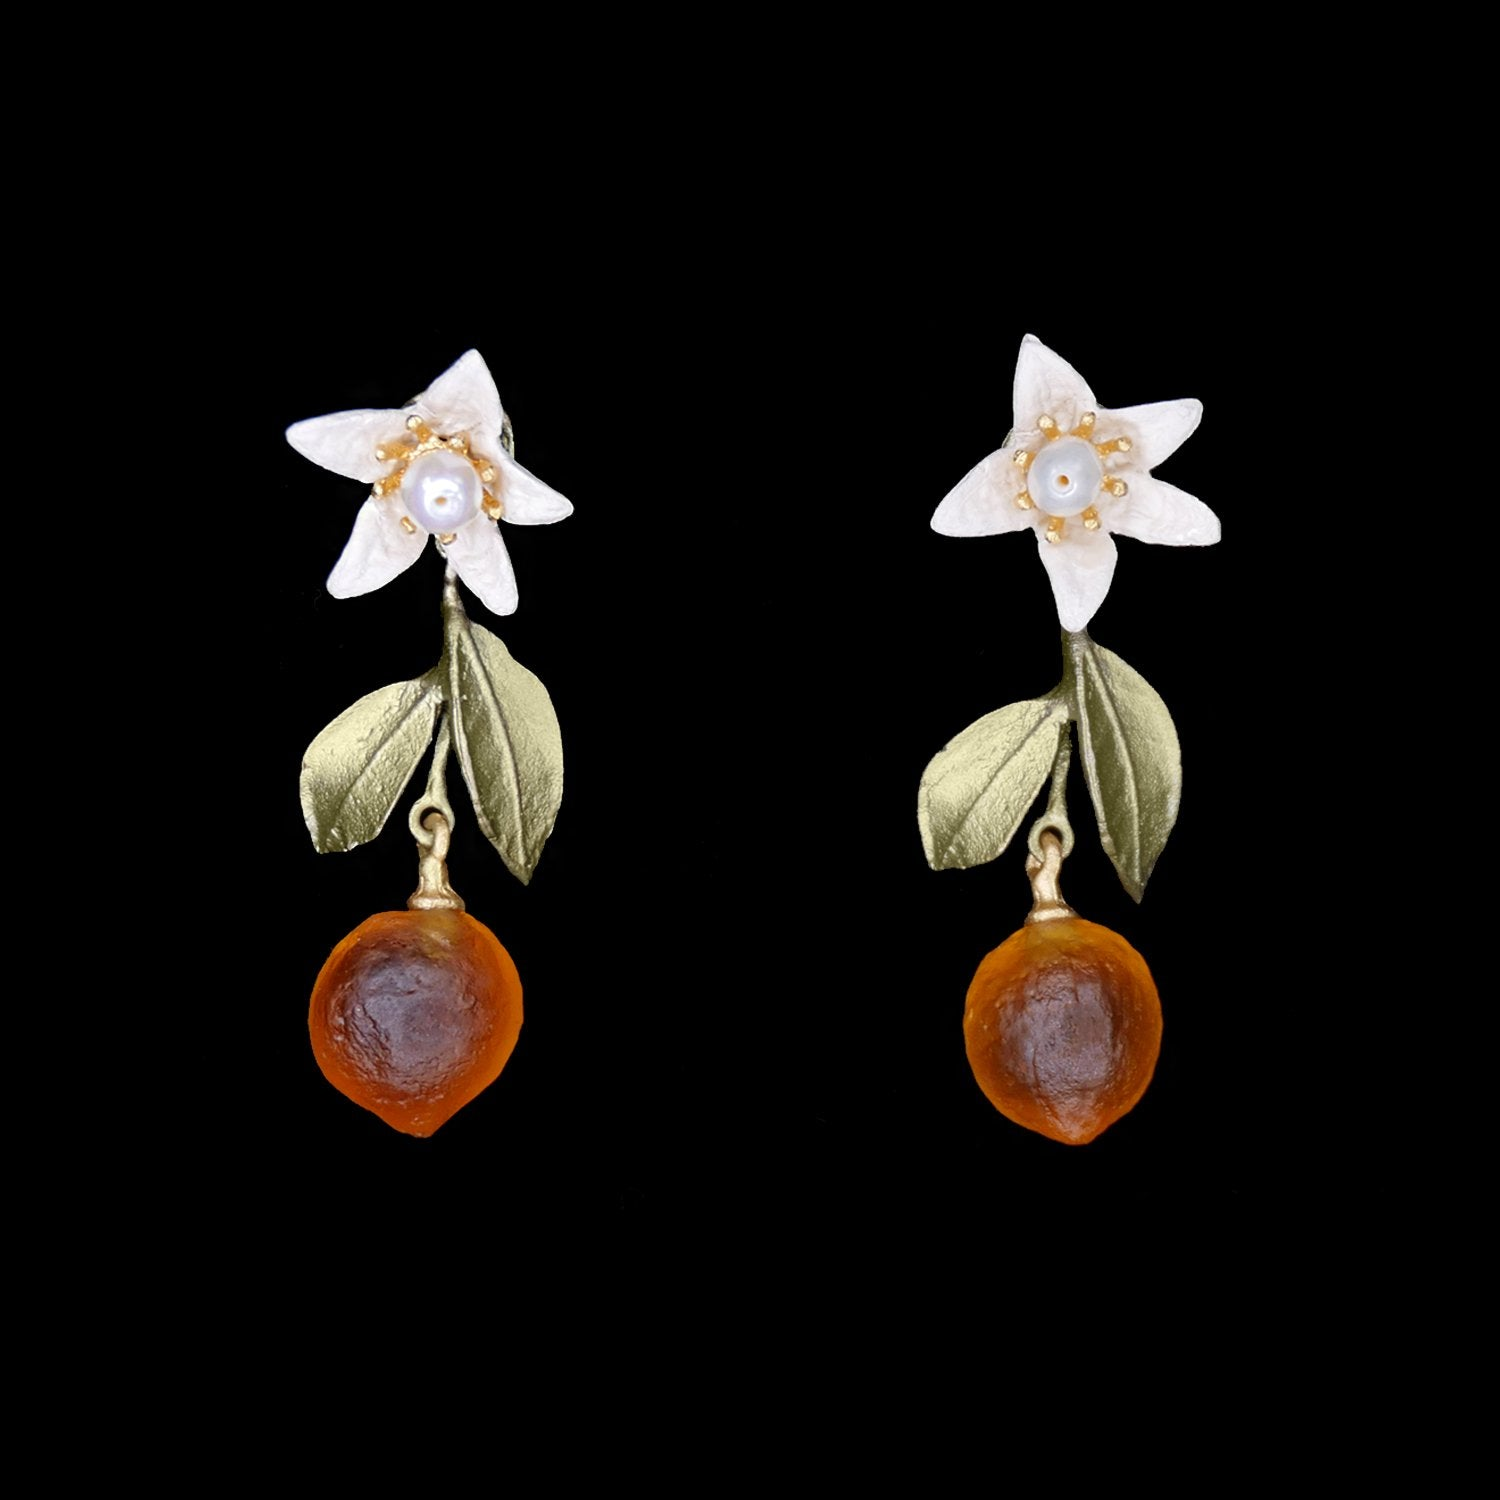 Orange Earrings - Flower and Drop Post